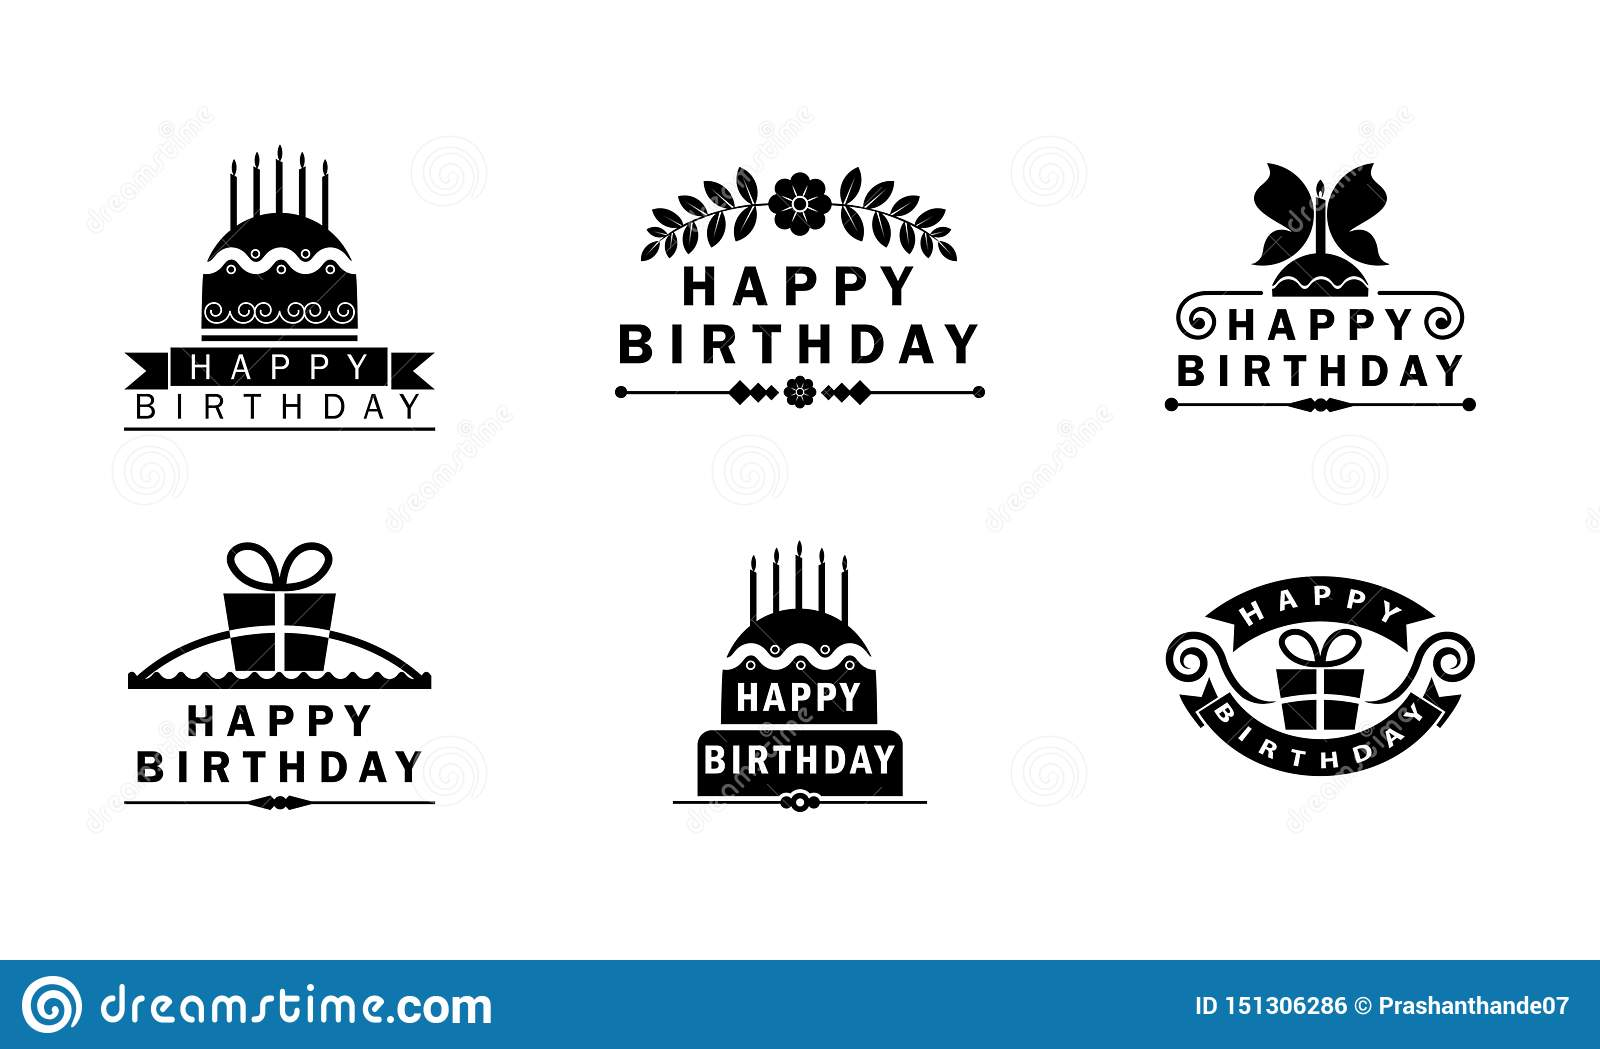 Happy birthday Black and white badges/ logo unites